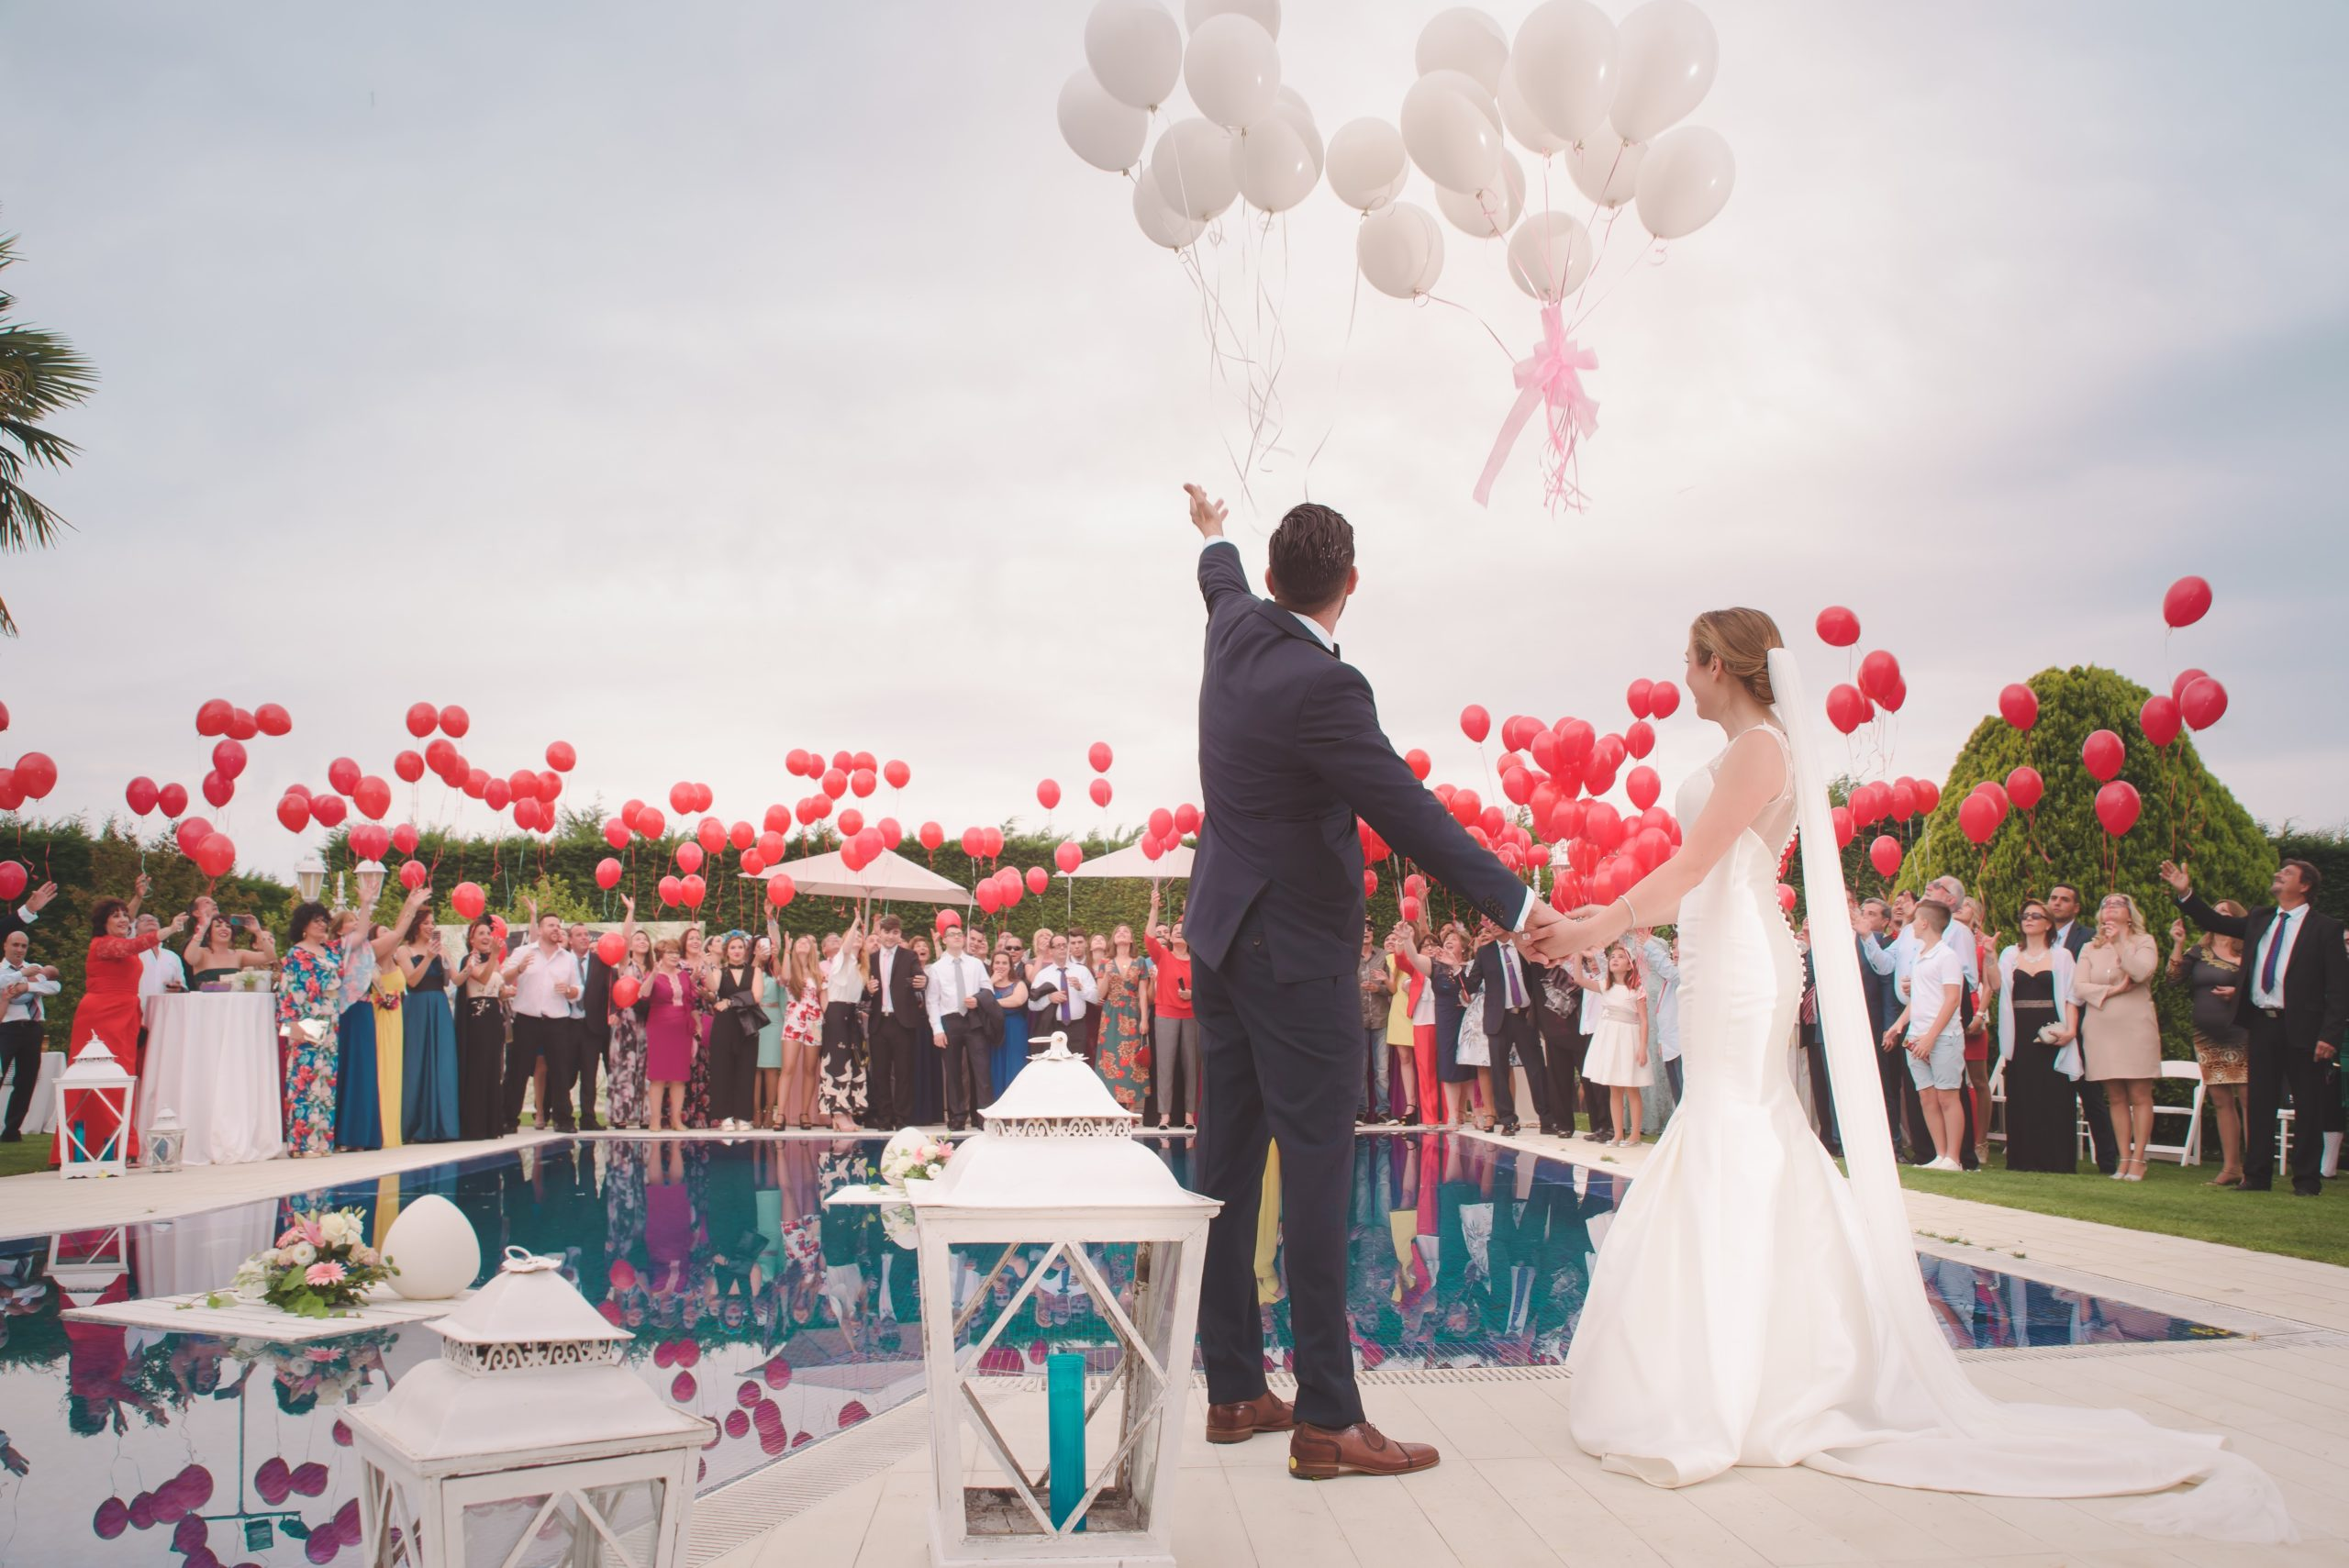 Ideas To Decorate Your Wedding With Balloons